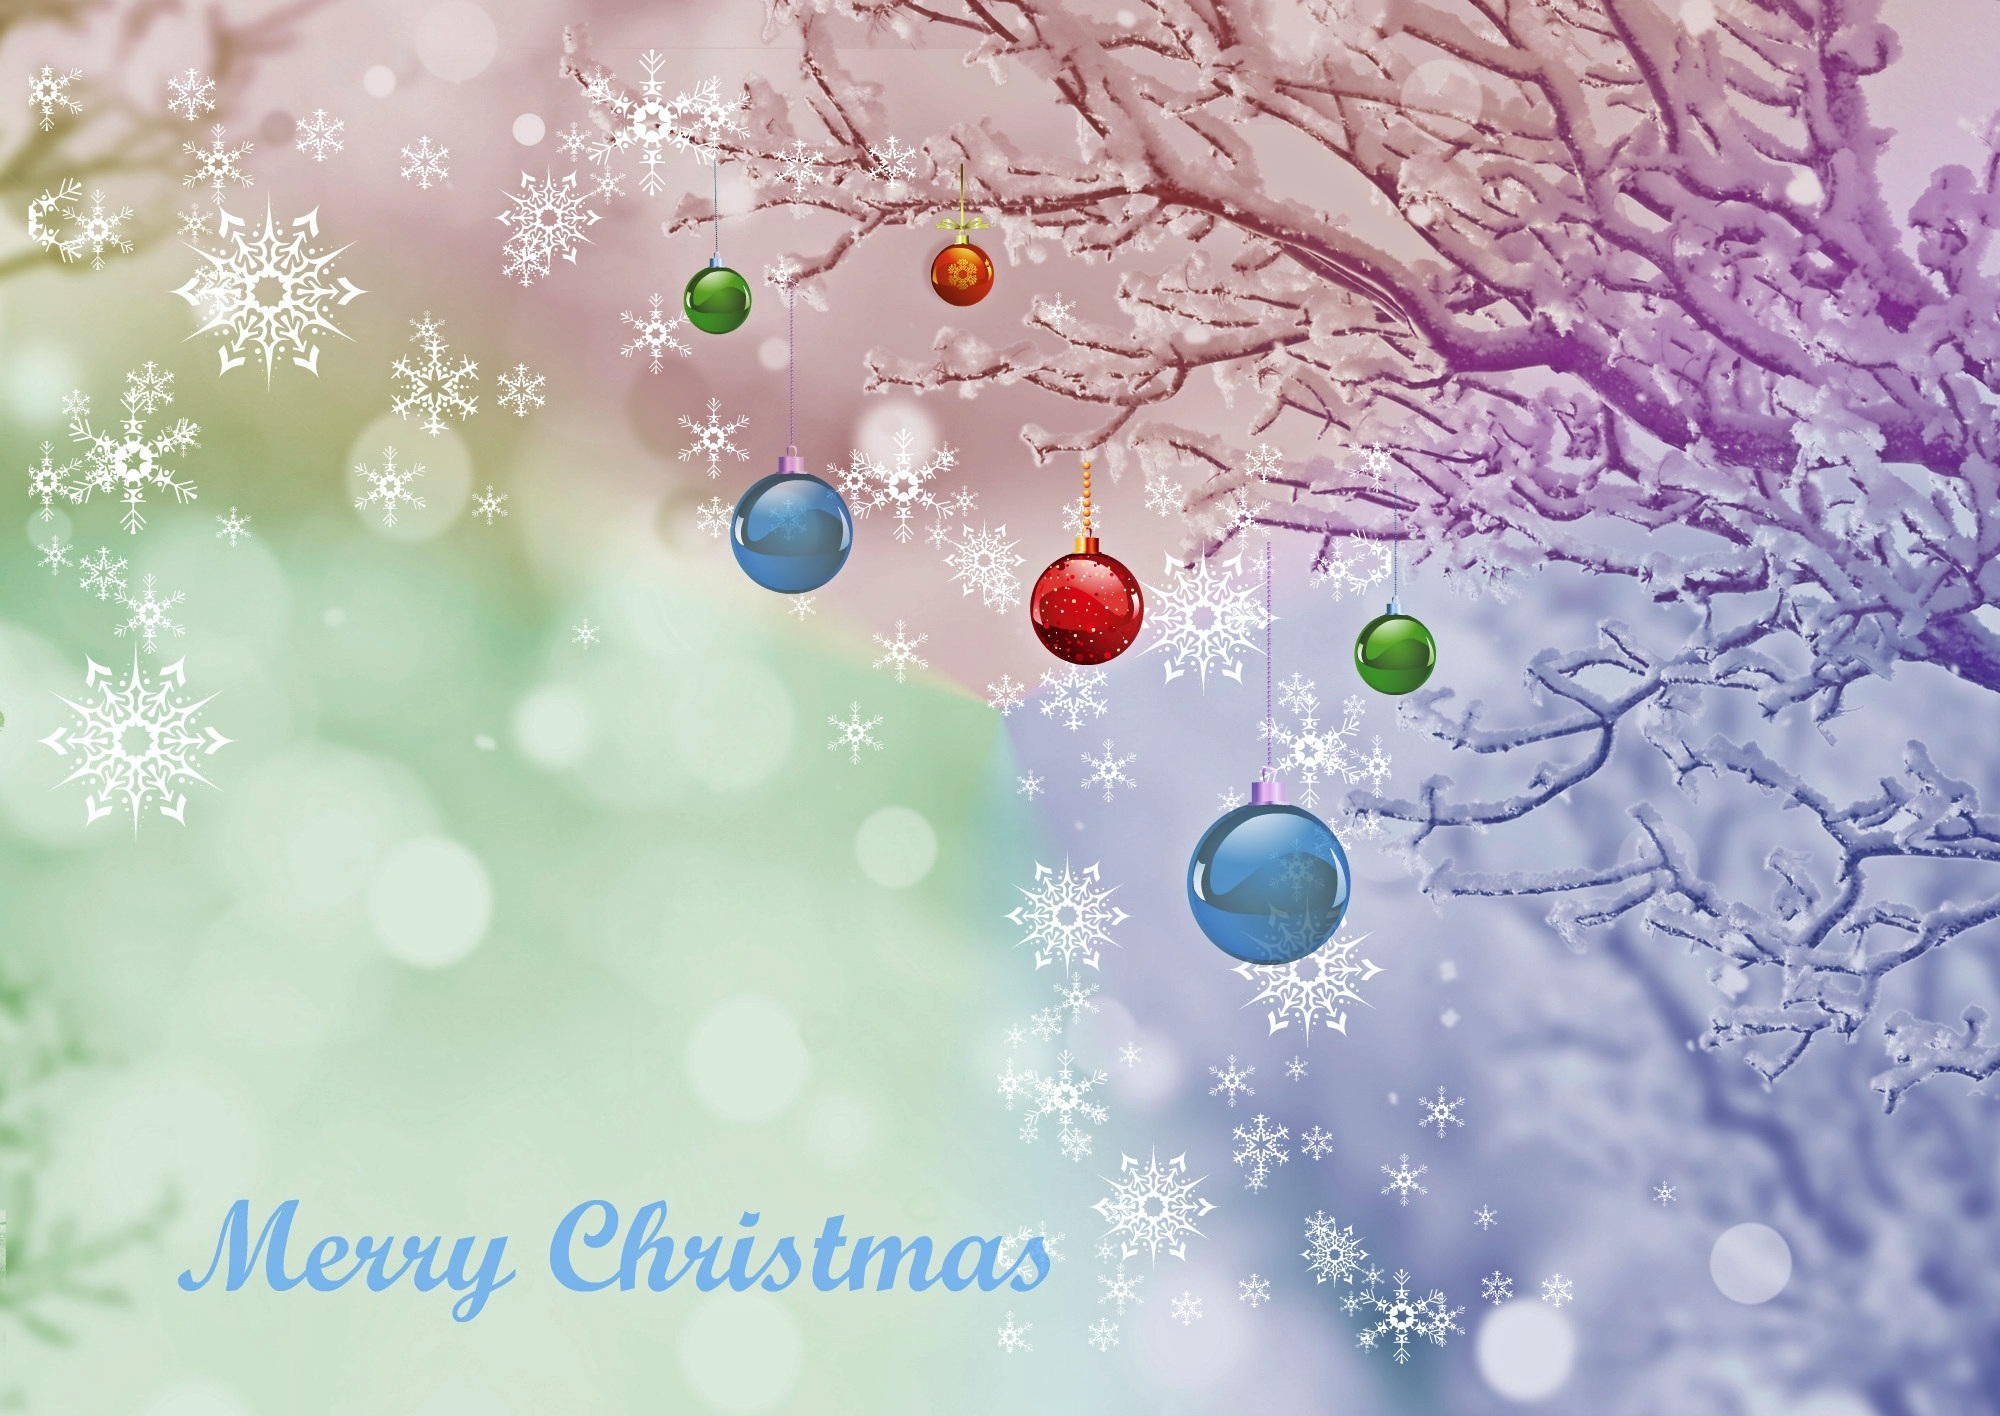 Merry Christmas, Card, Christmas, Event, Invitation, HQ Photo